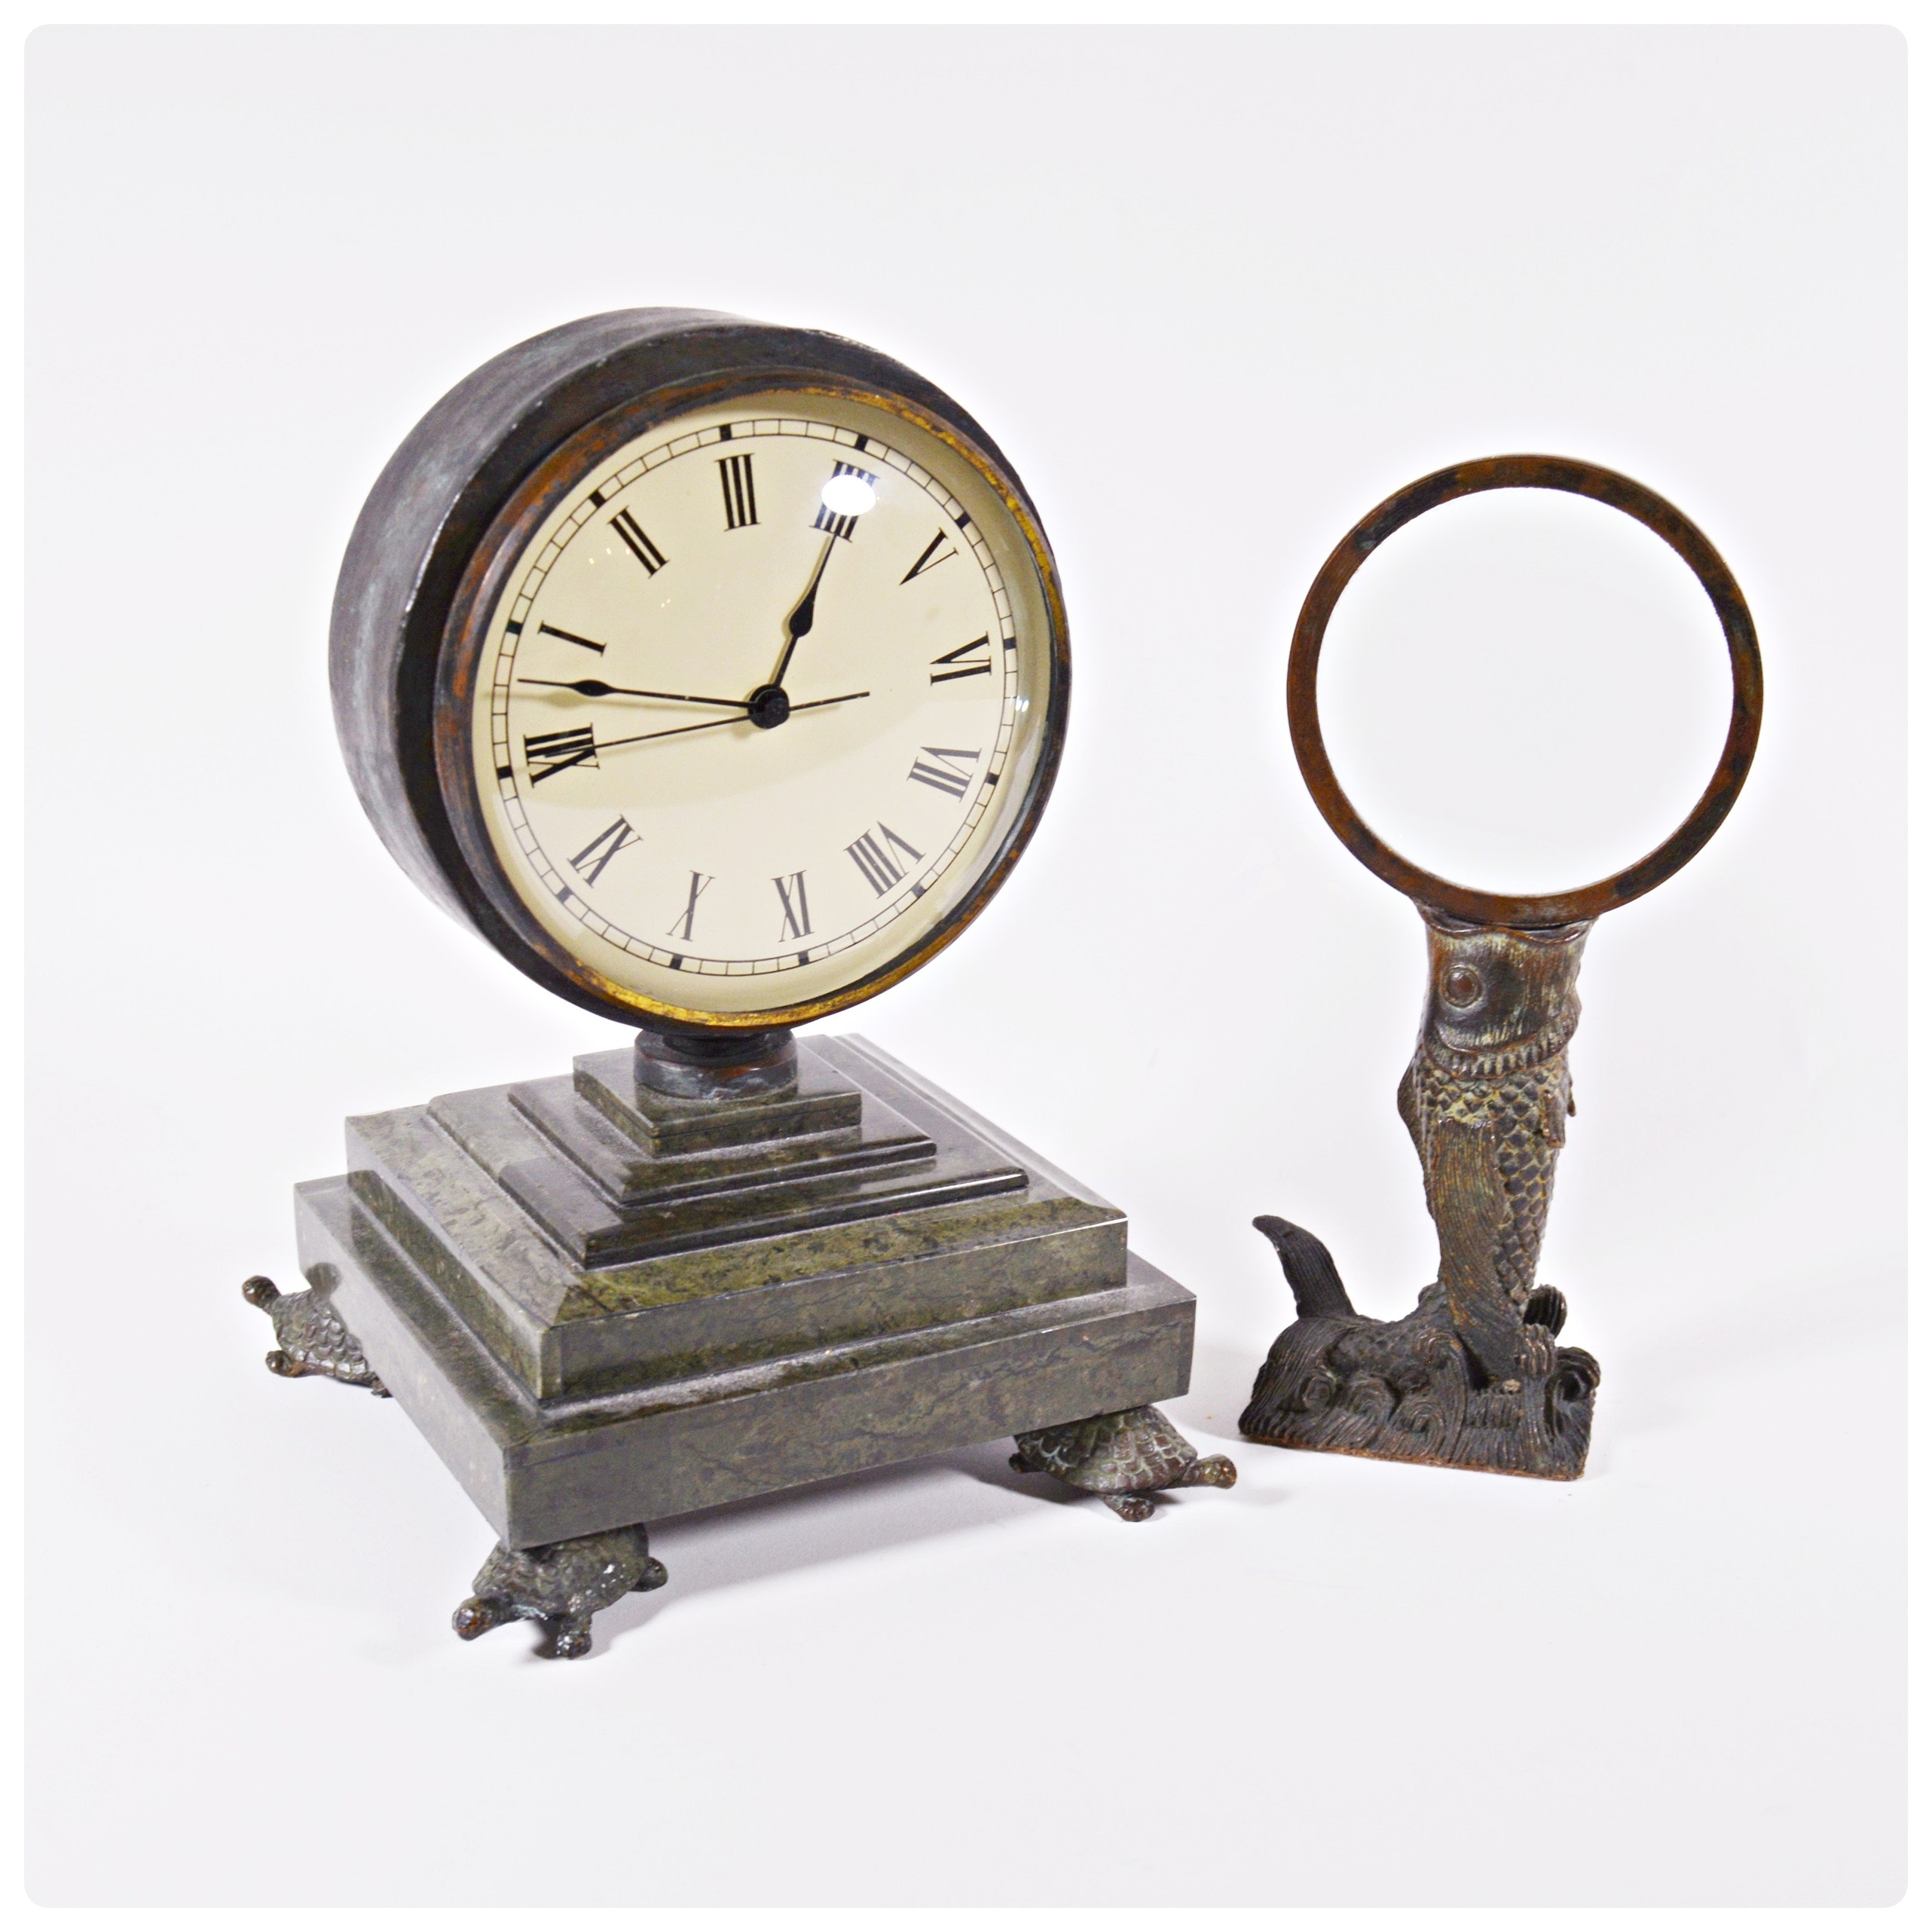 Maitland-Smith Turtle Foot Mantle Clock and Carp Magnifying Glass